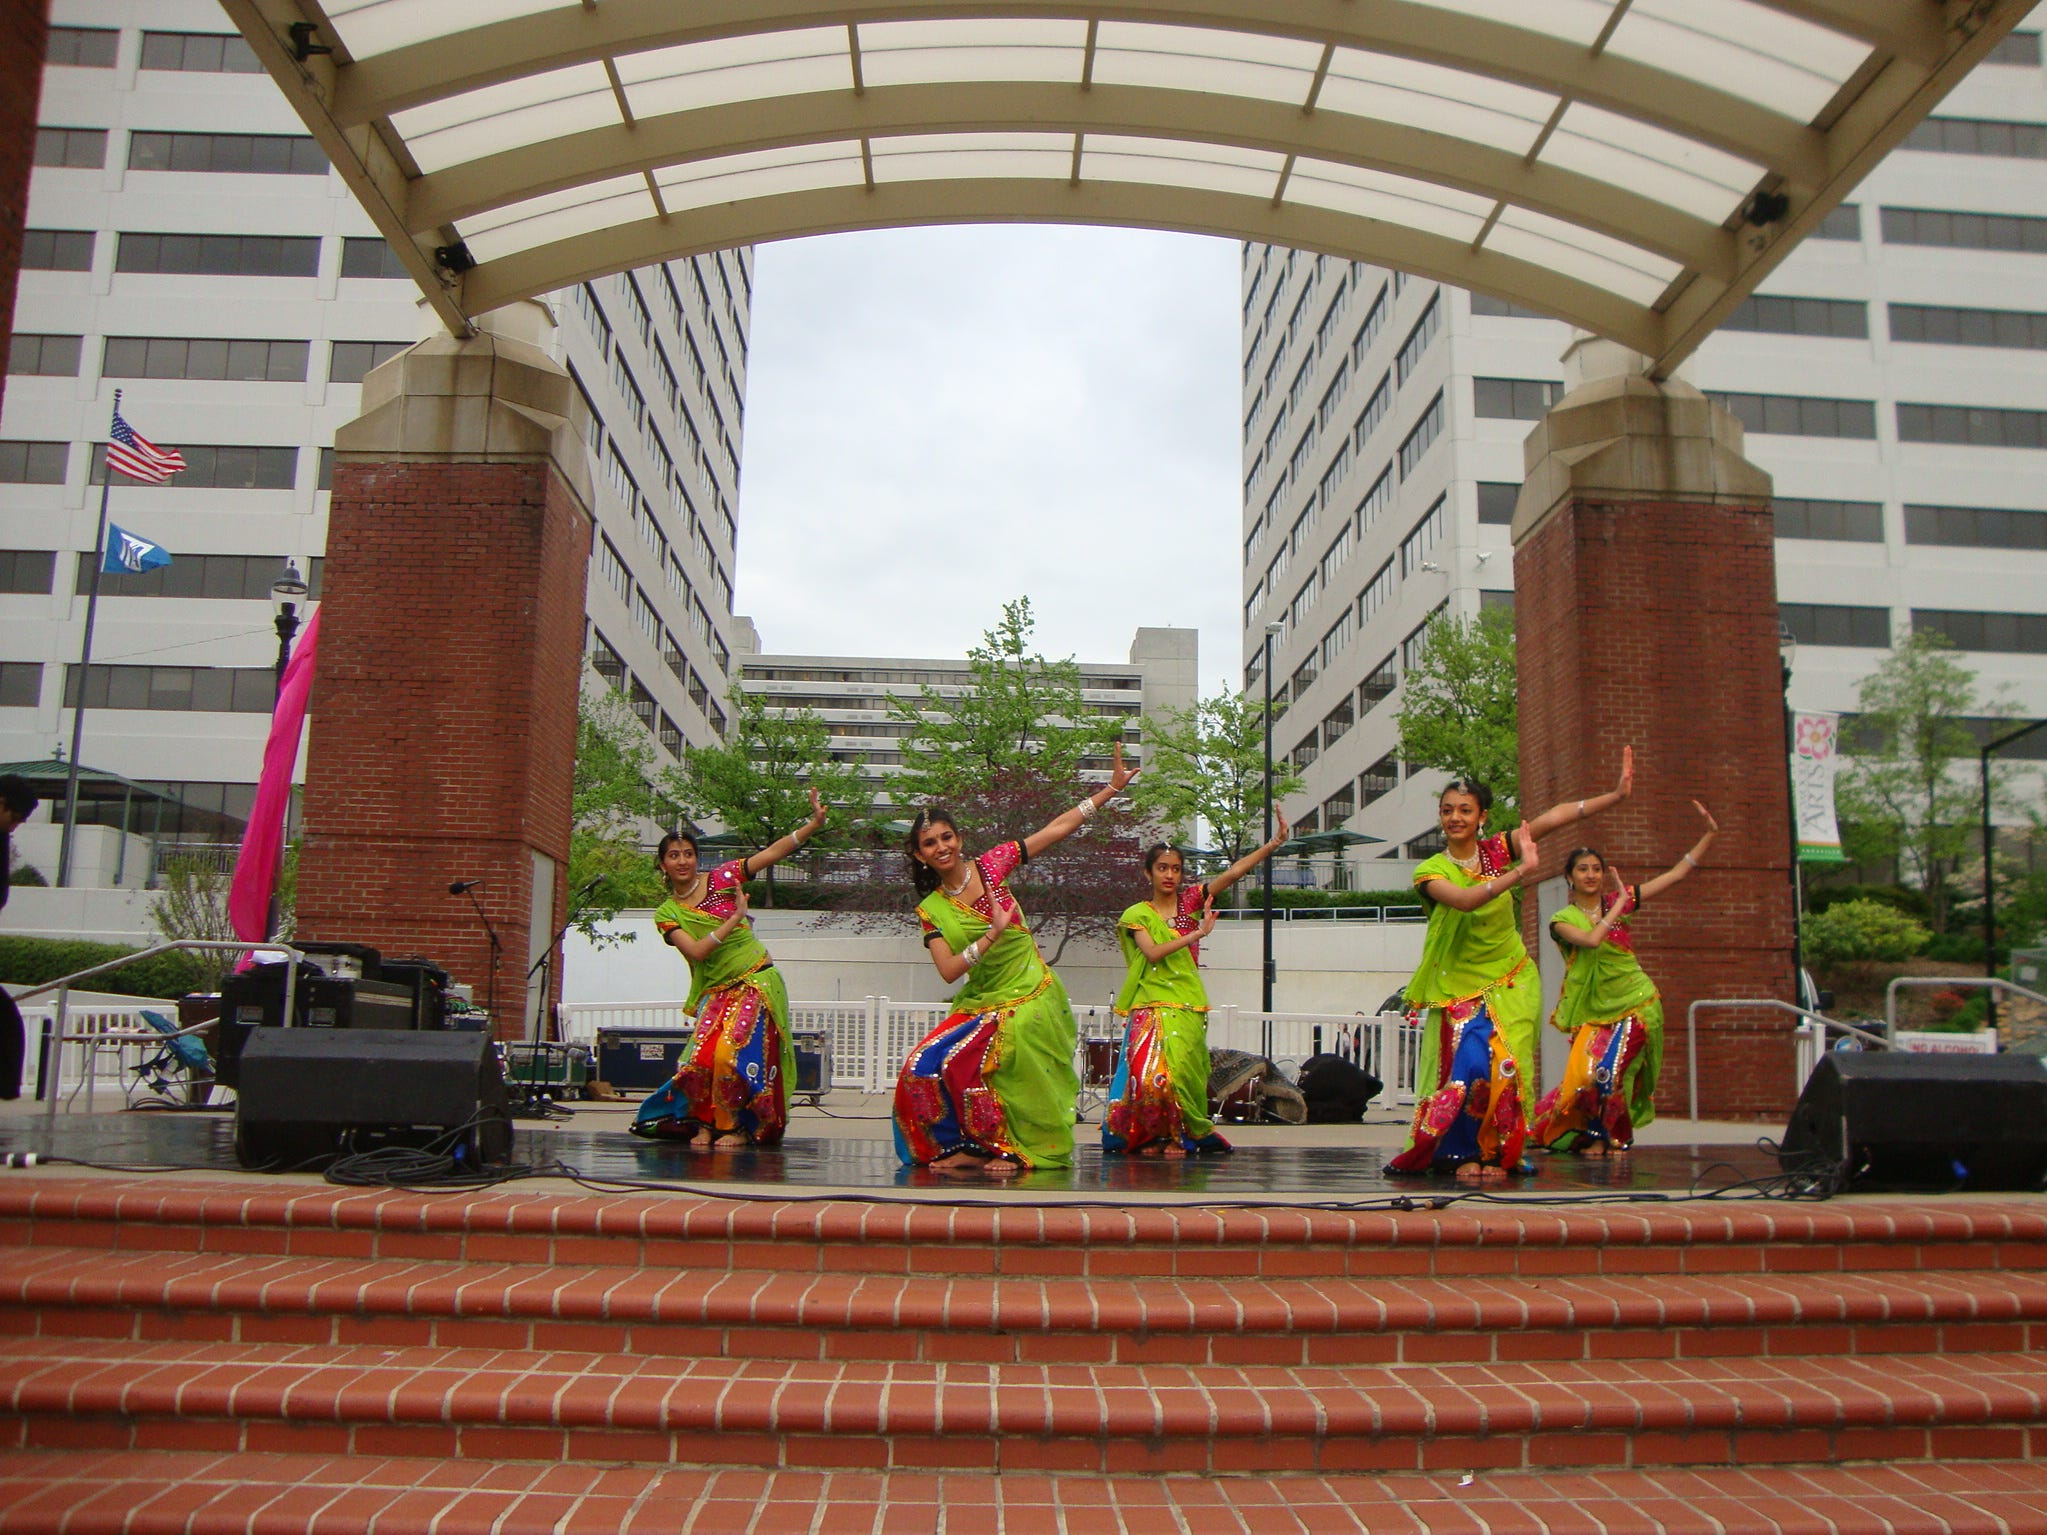 From left, Purvi Patel, Nisha Mistry, Juhi Patel, Selena Patel and Priya Patel perform at the Dogwood Arts Festival on Market Square. They are students with Arya Dance Acadamy, located at Dance Center West in Knoxville. 2011